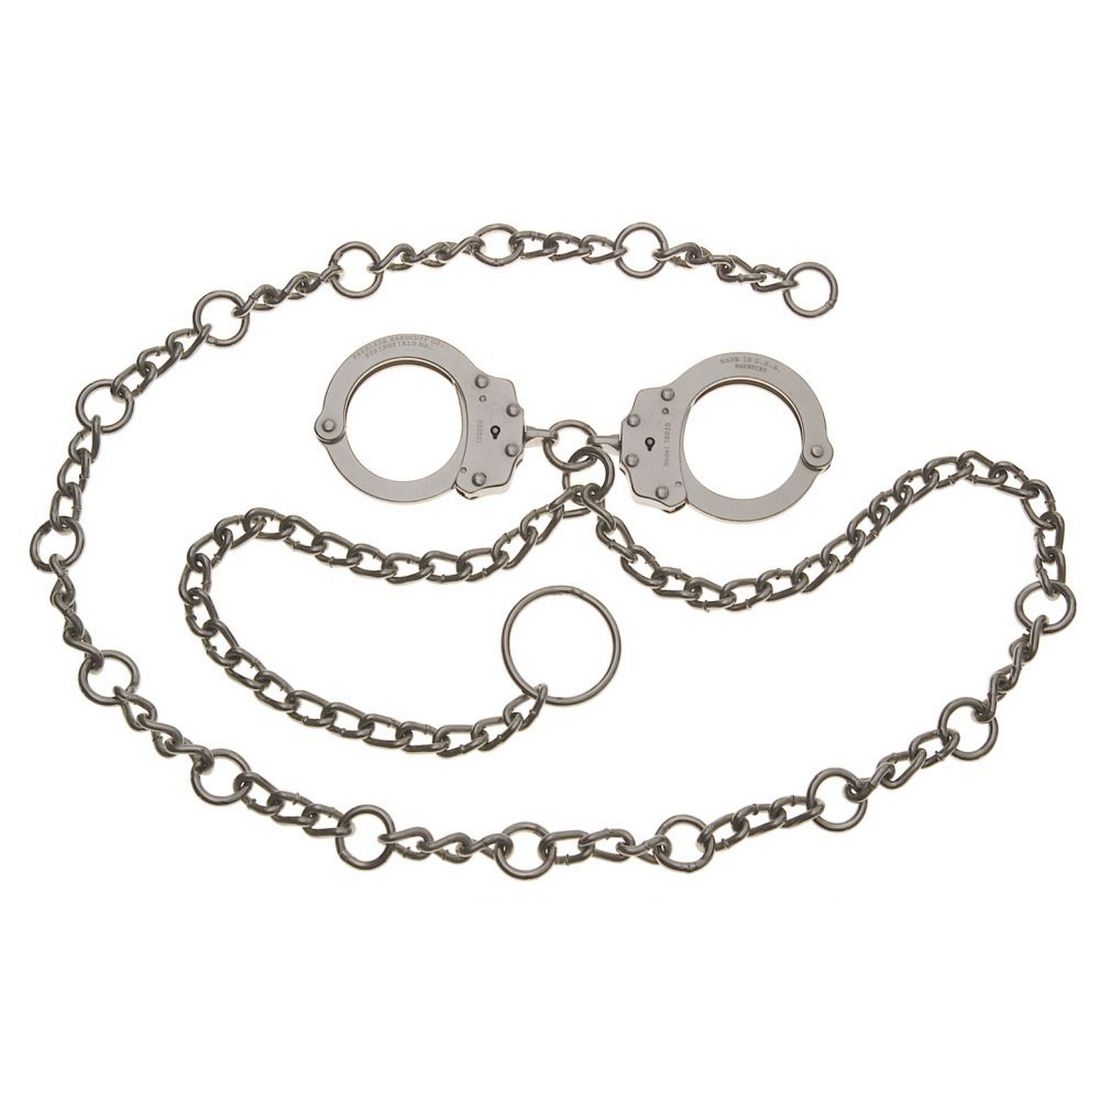 Peerless 7003C Waist Chain - Handcuffs at Navel